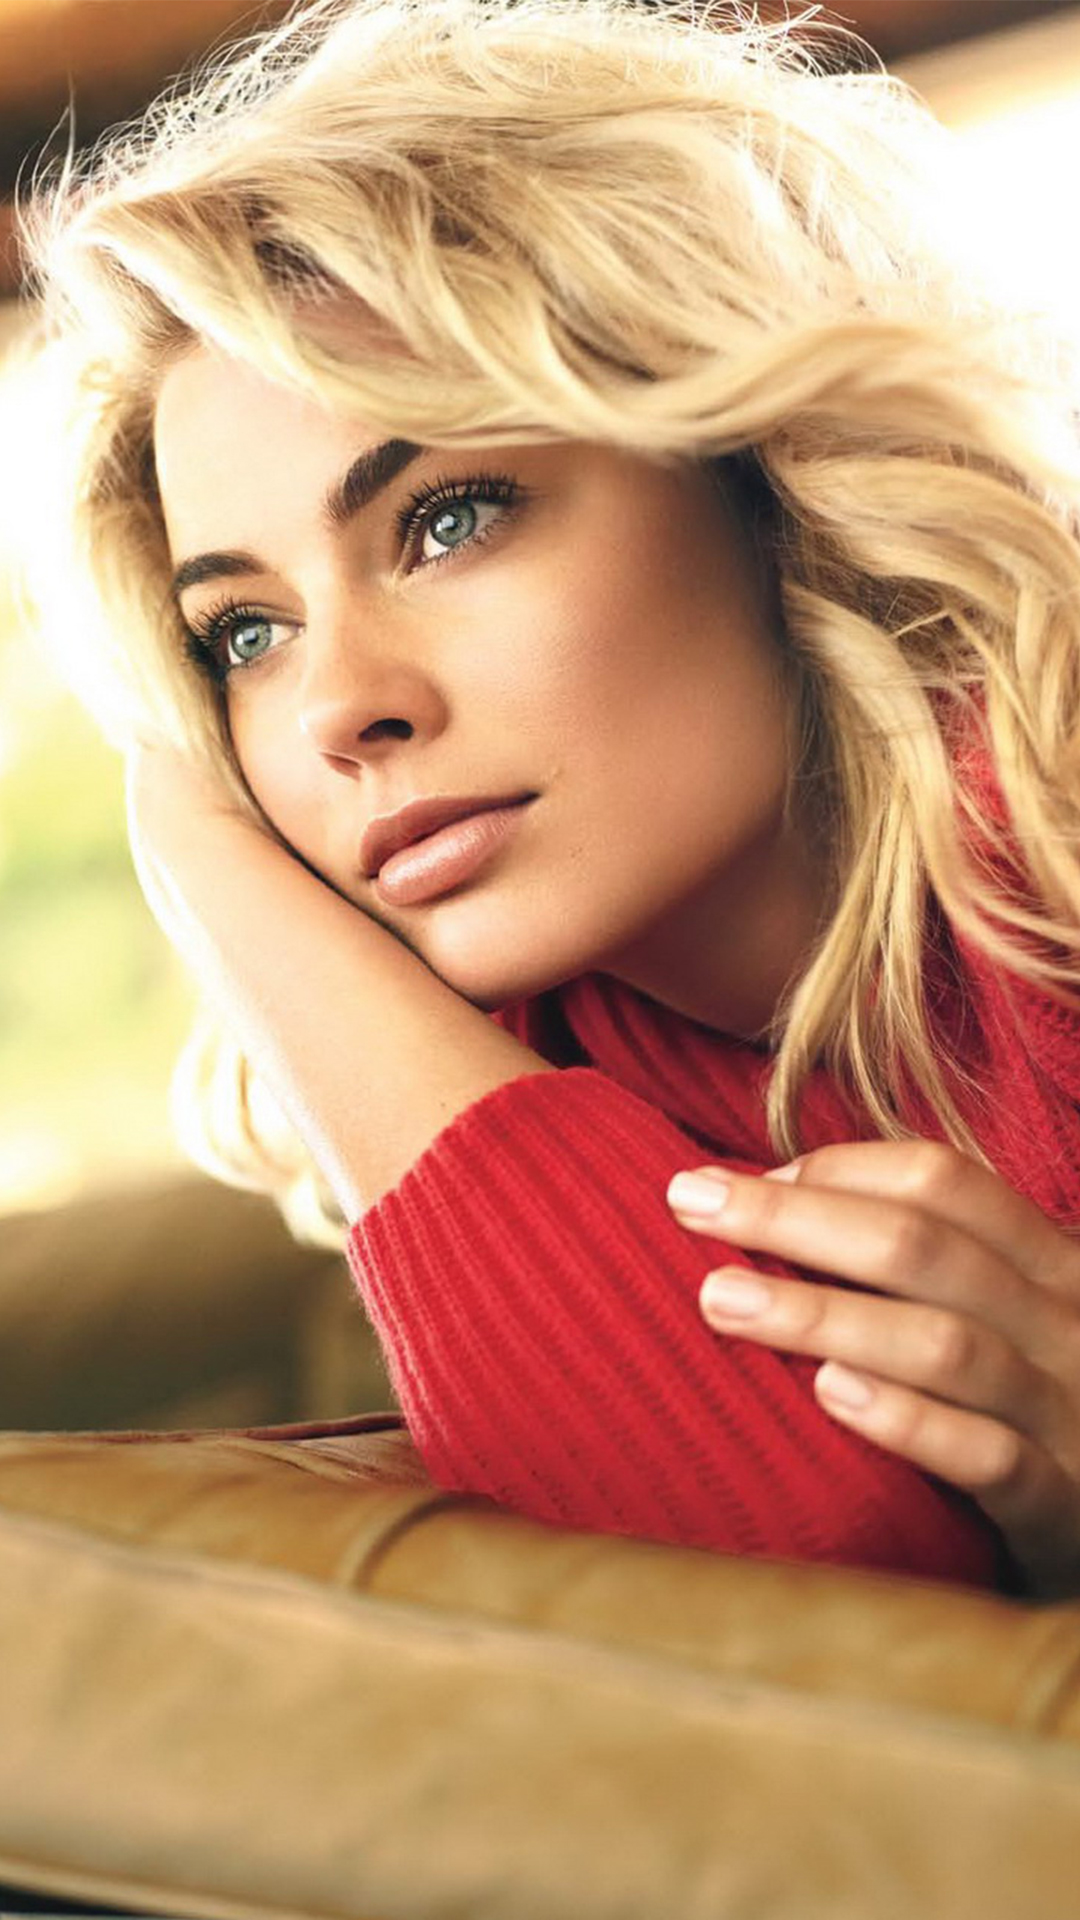 Actress wallpapers lovely margot robbie celebrity actress - Actress wallpaper download for mobile ...